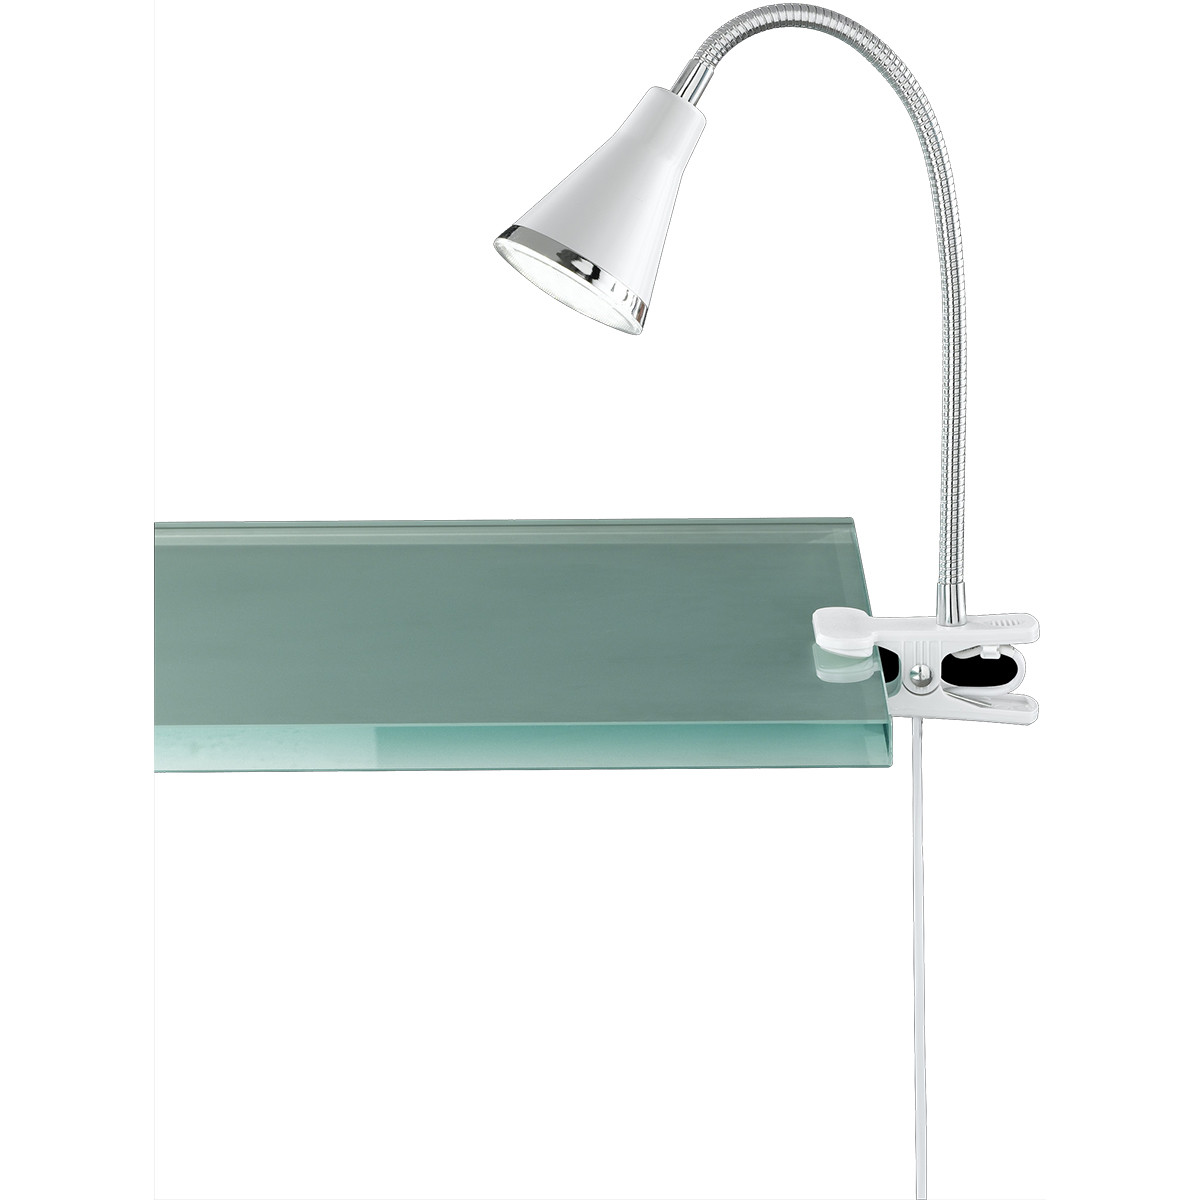 LED Klemlamp - Trion Arora - 3W - Warm Wit 3000K - Glans Wit - Kunststof